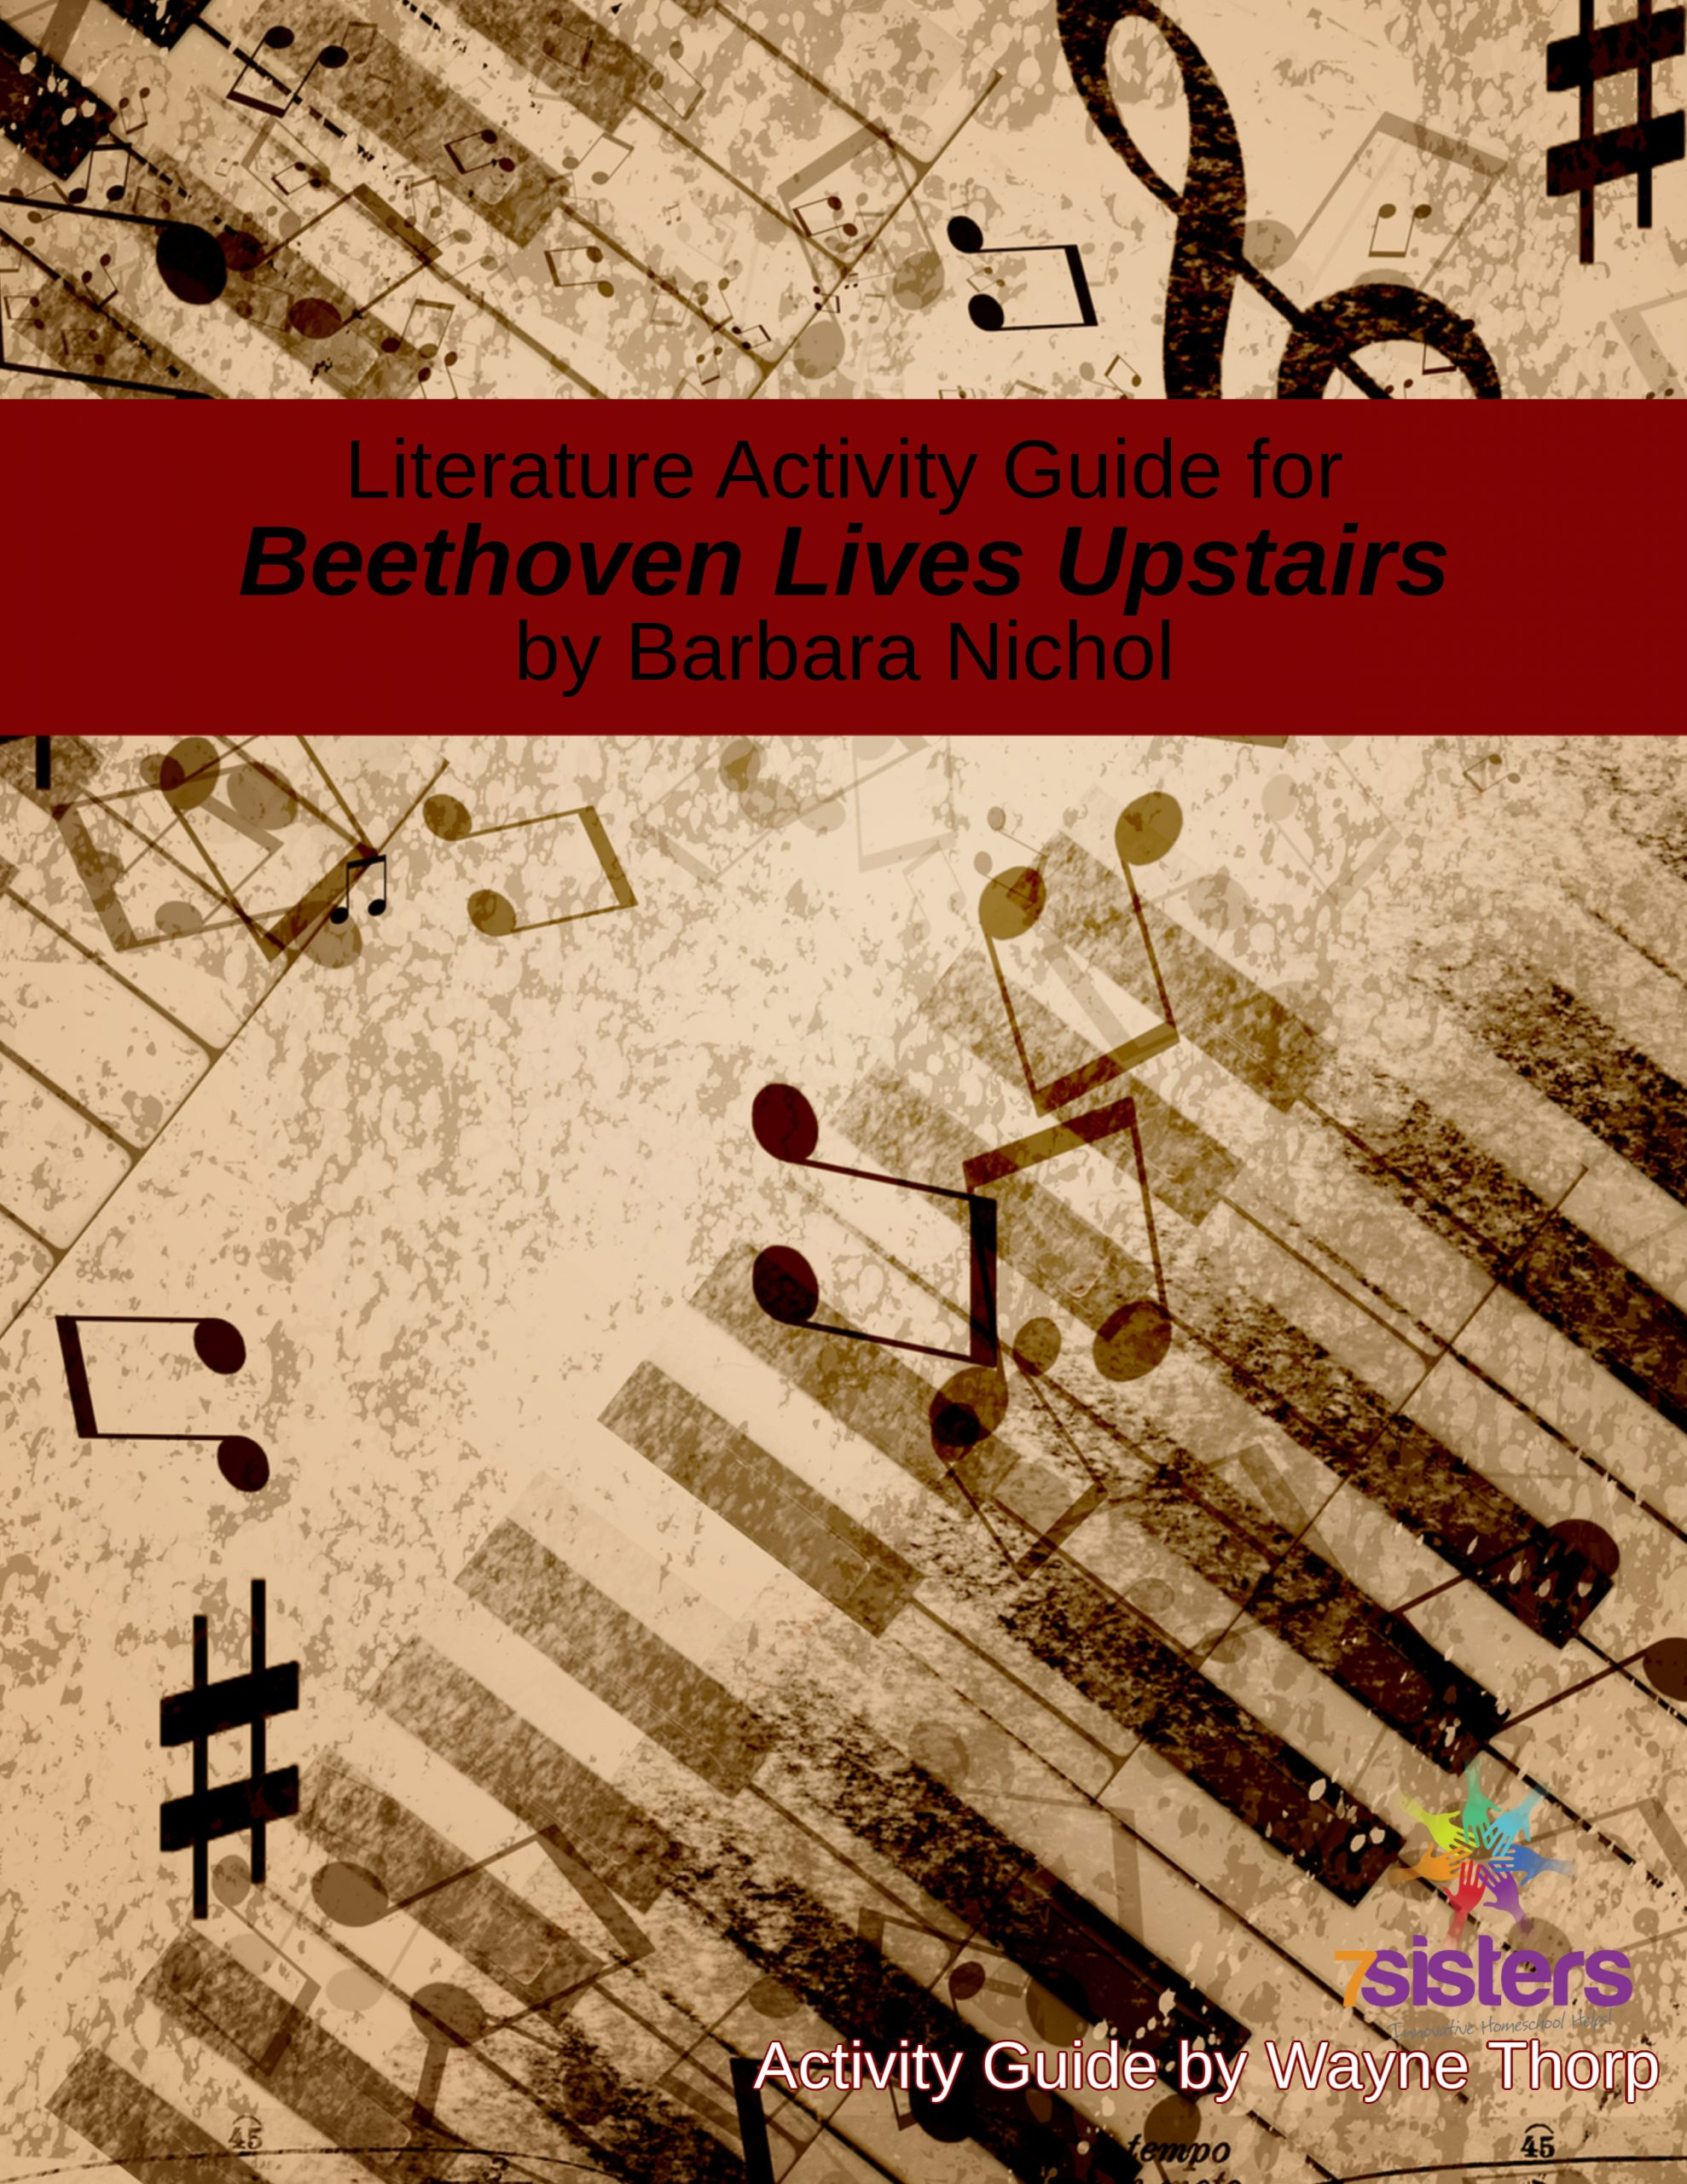 Activity Guide Literature Activity Guide For Beethoven